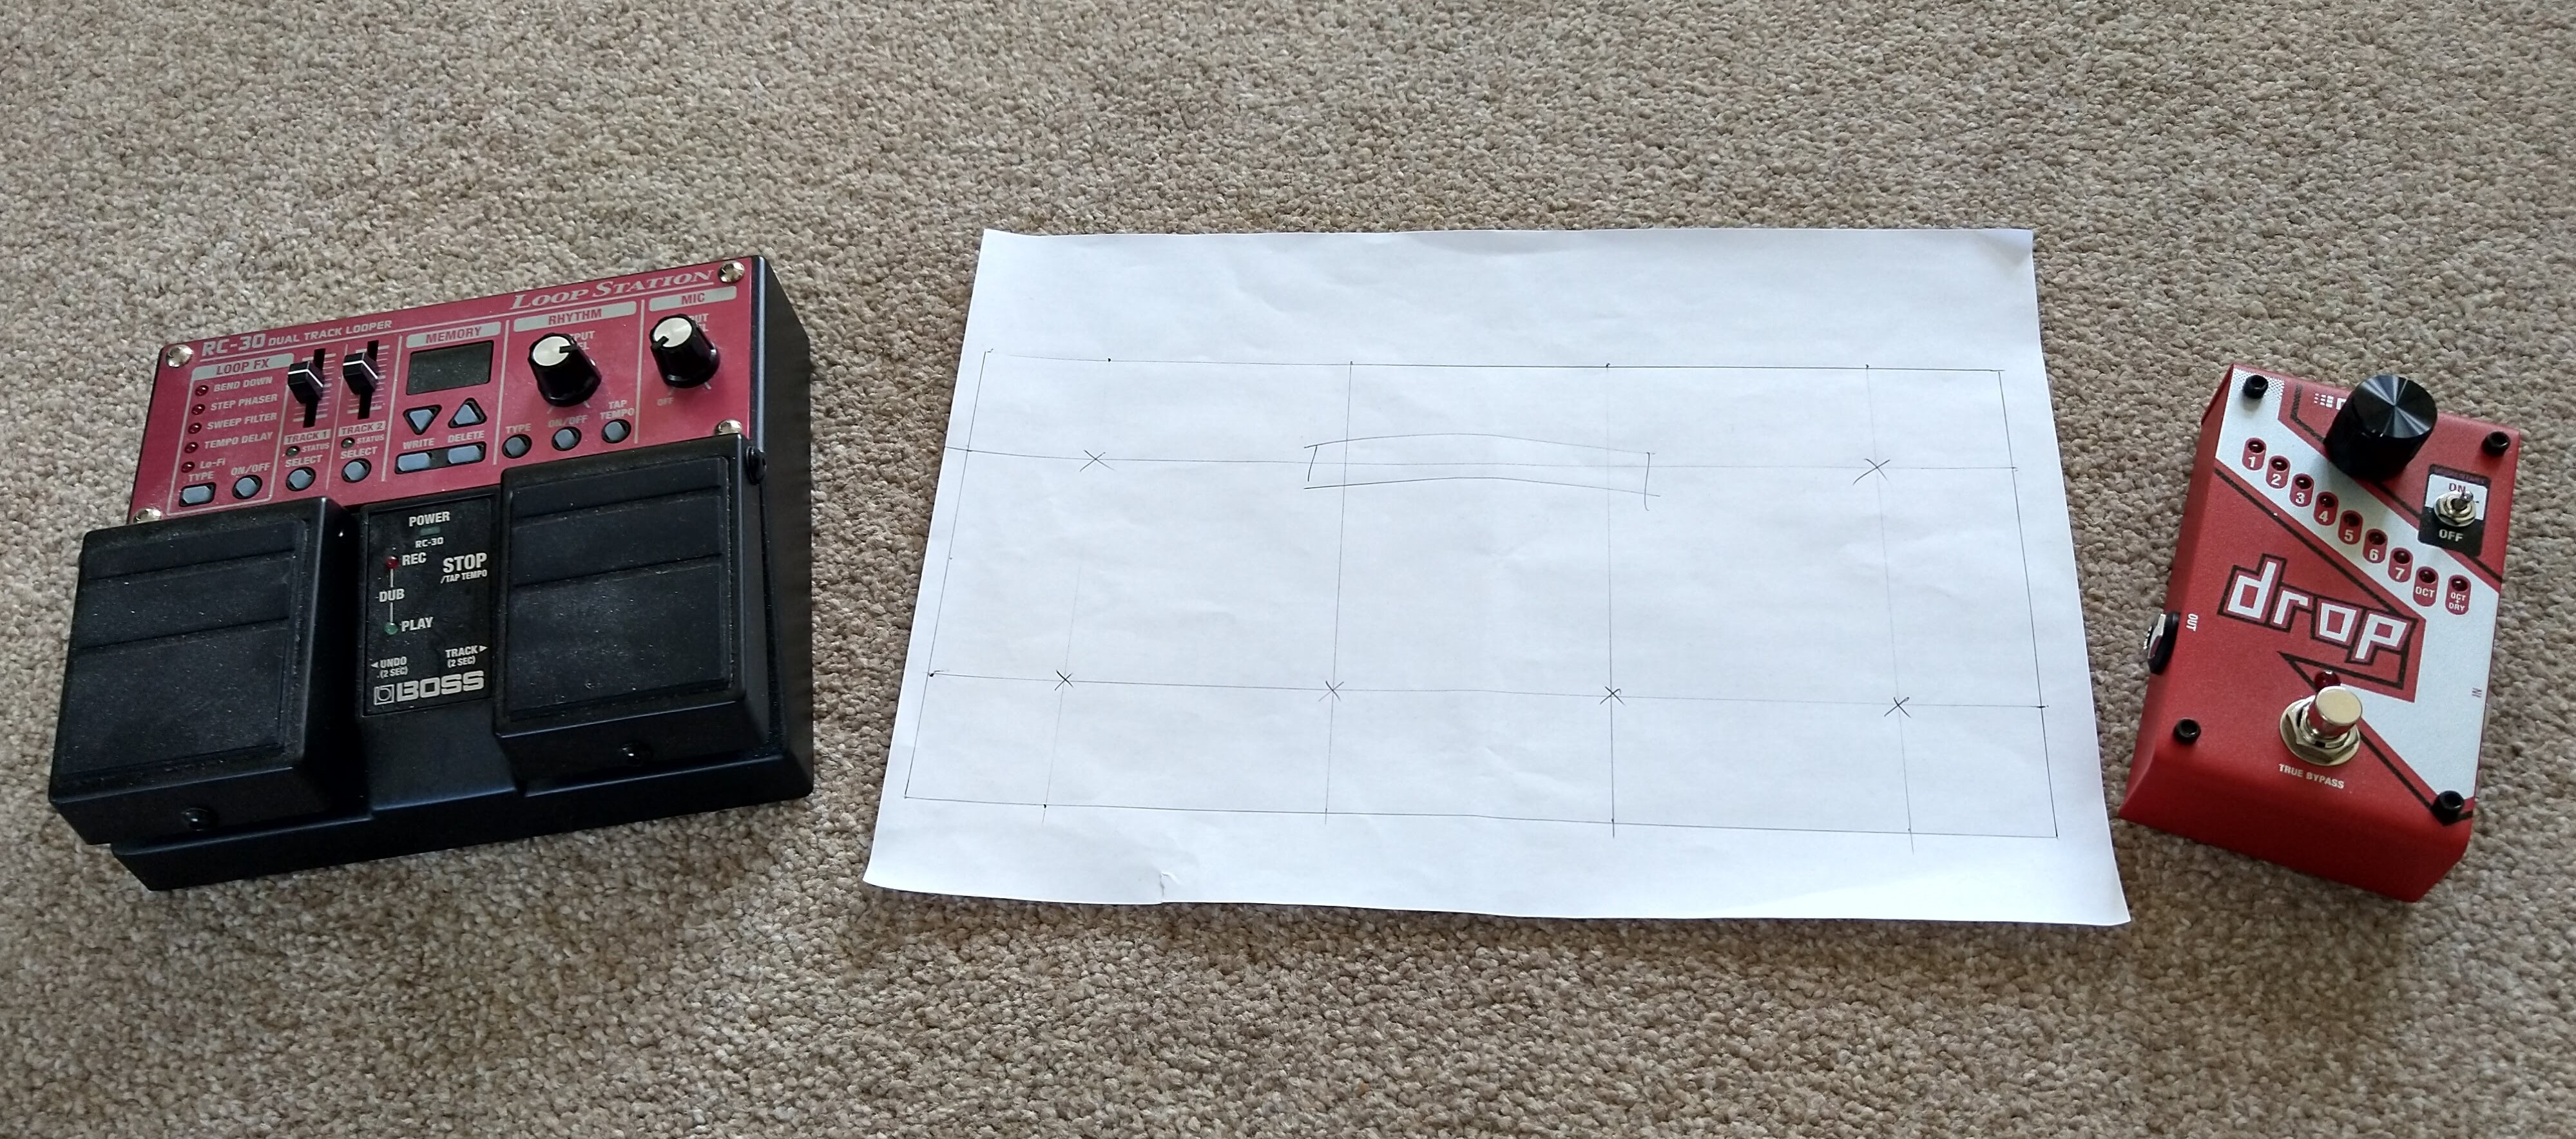 A sheet of paper on the floor with a 1:1 scale drawing of SoundFloored on it. To the left of the sheet of paper is a BOSS RC-30 pedal and to the right is a DigiTech Drop pedal